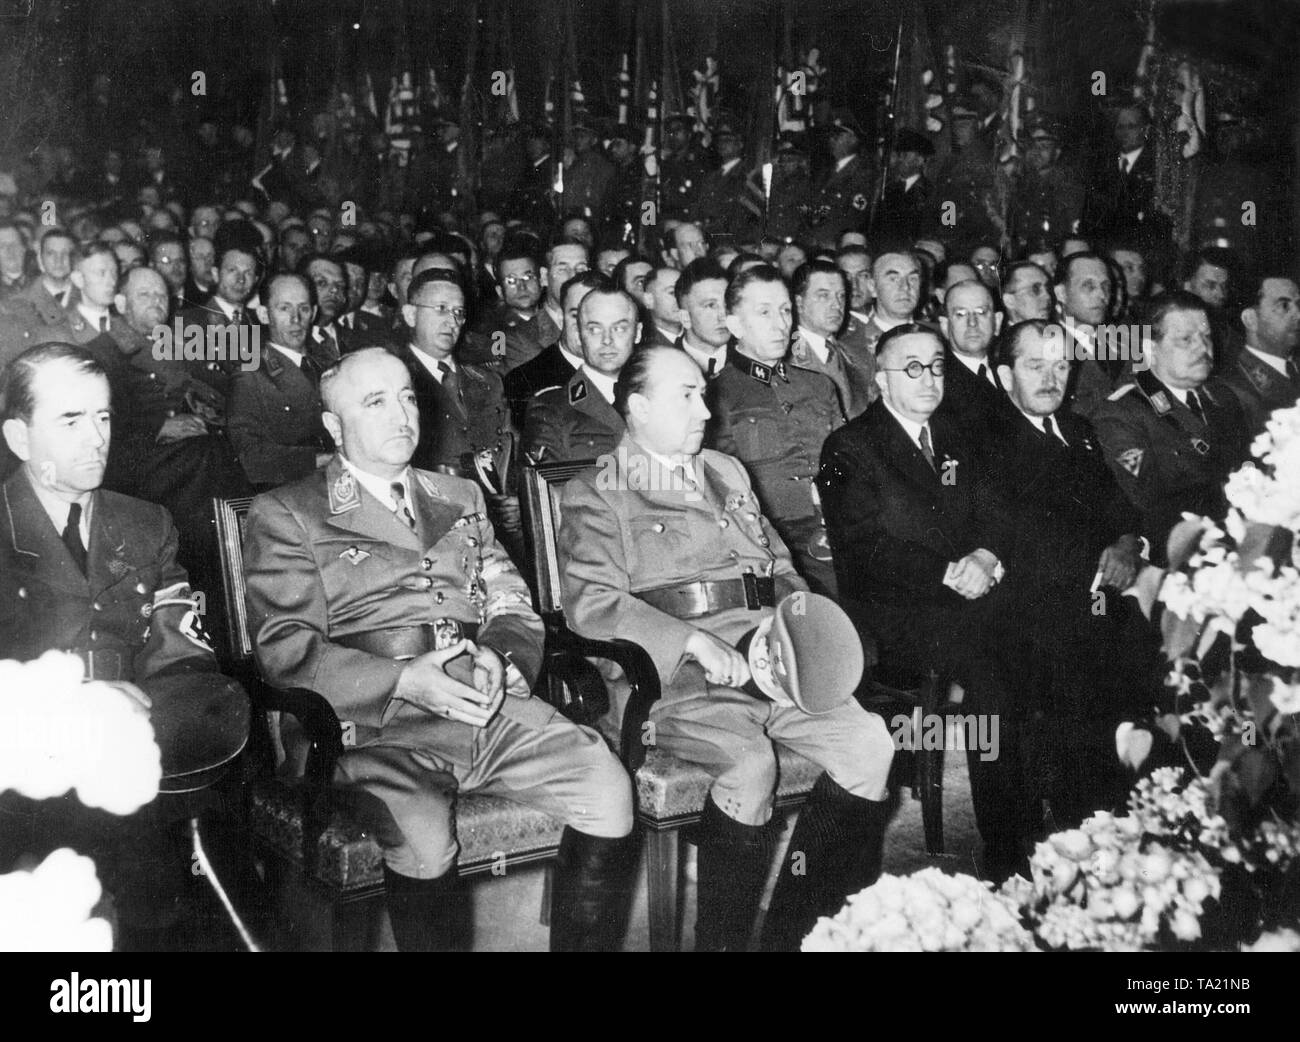 Leading Men of the NSDAP, the Wehrmacht and the German armaments industry at a ceremony for 'Labor Day' on May 1. 1942. From left to right: Albert Speer, Reich Organization Leader Dr. Robert Ley (Labor Front), Economy Minister Walther Funck, the aircraft designer Dr. Ernst Heinkel, the VW engineer Prof. Dr. Ferdinand Porsche and Dr. Karl Wilhelm Ohnesorge - Stock Image